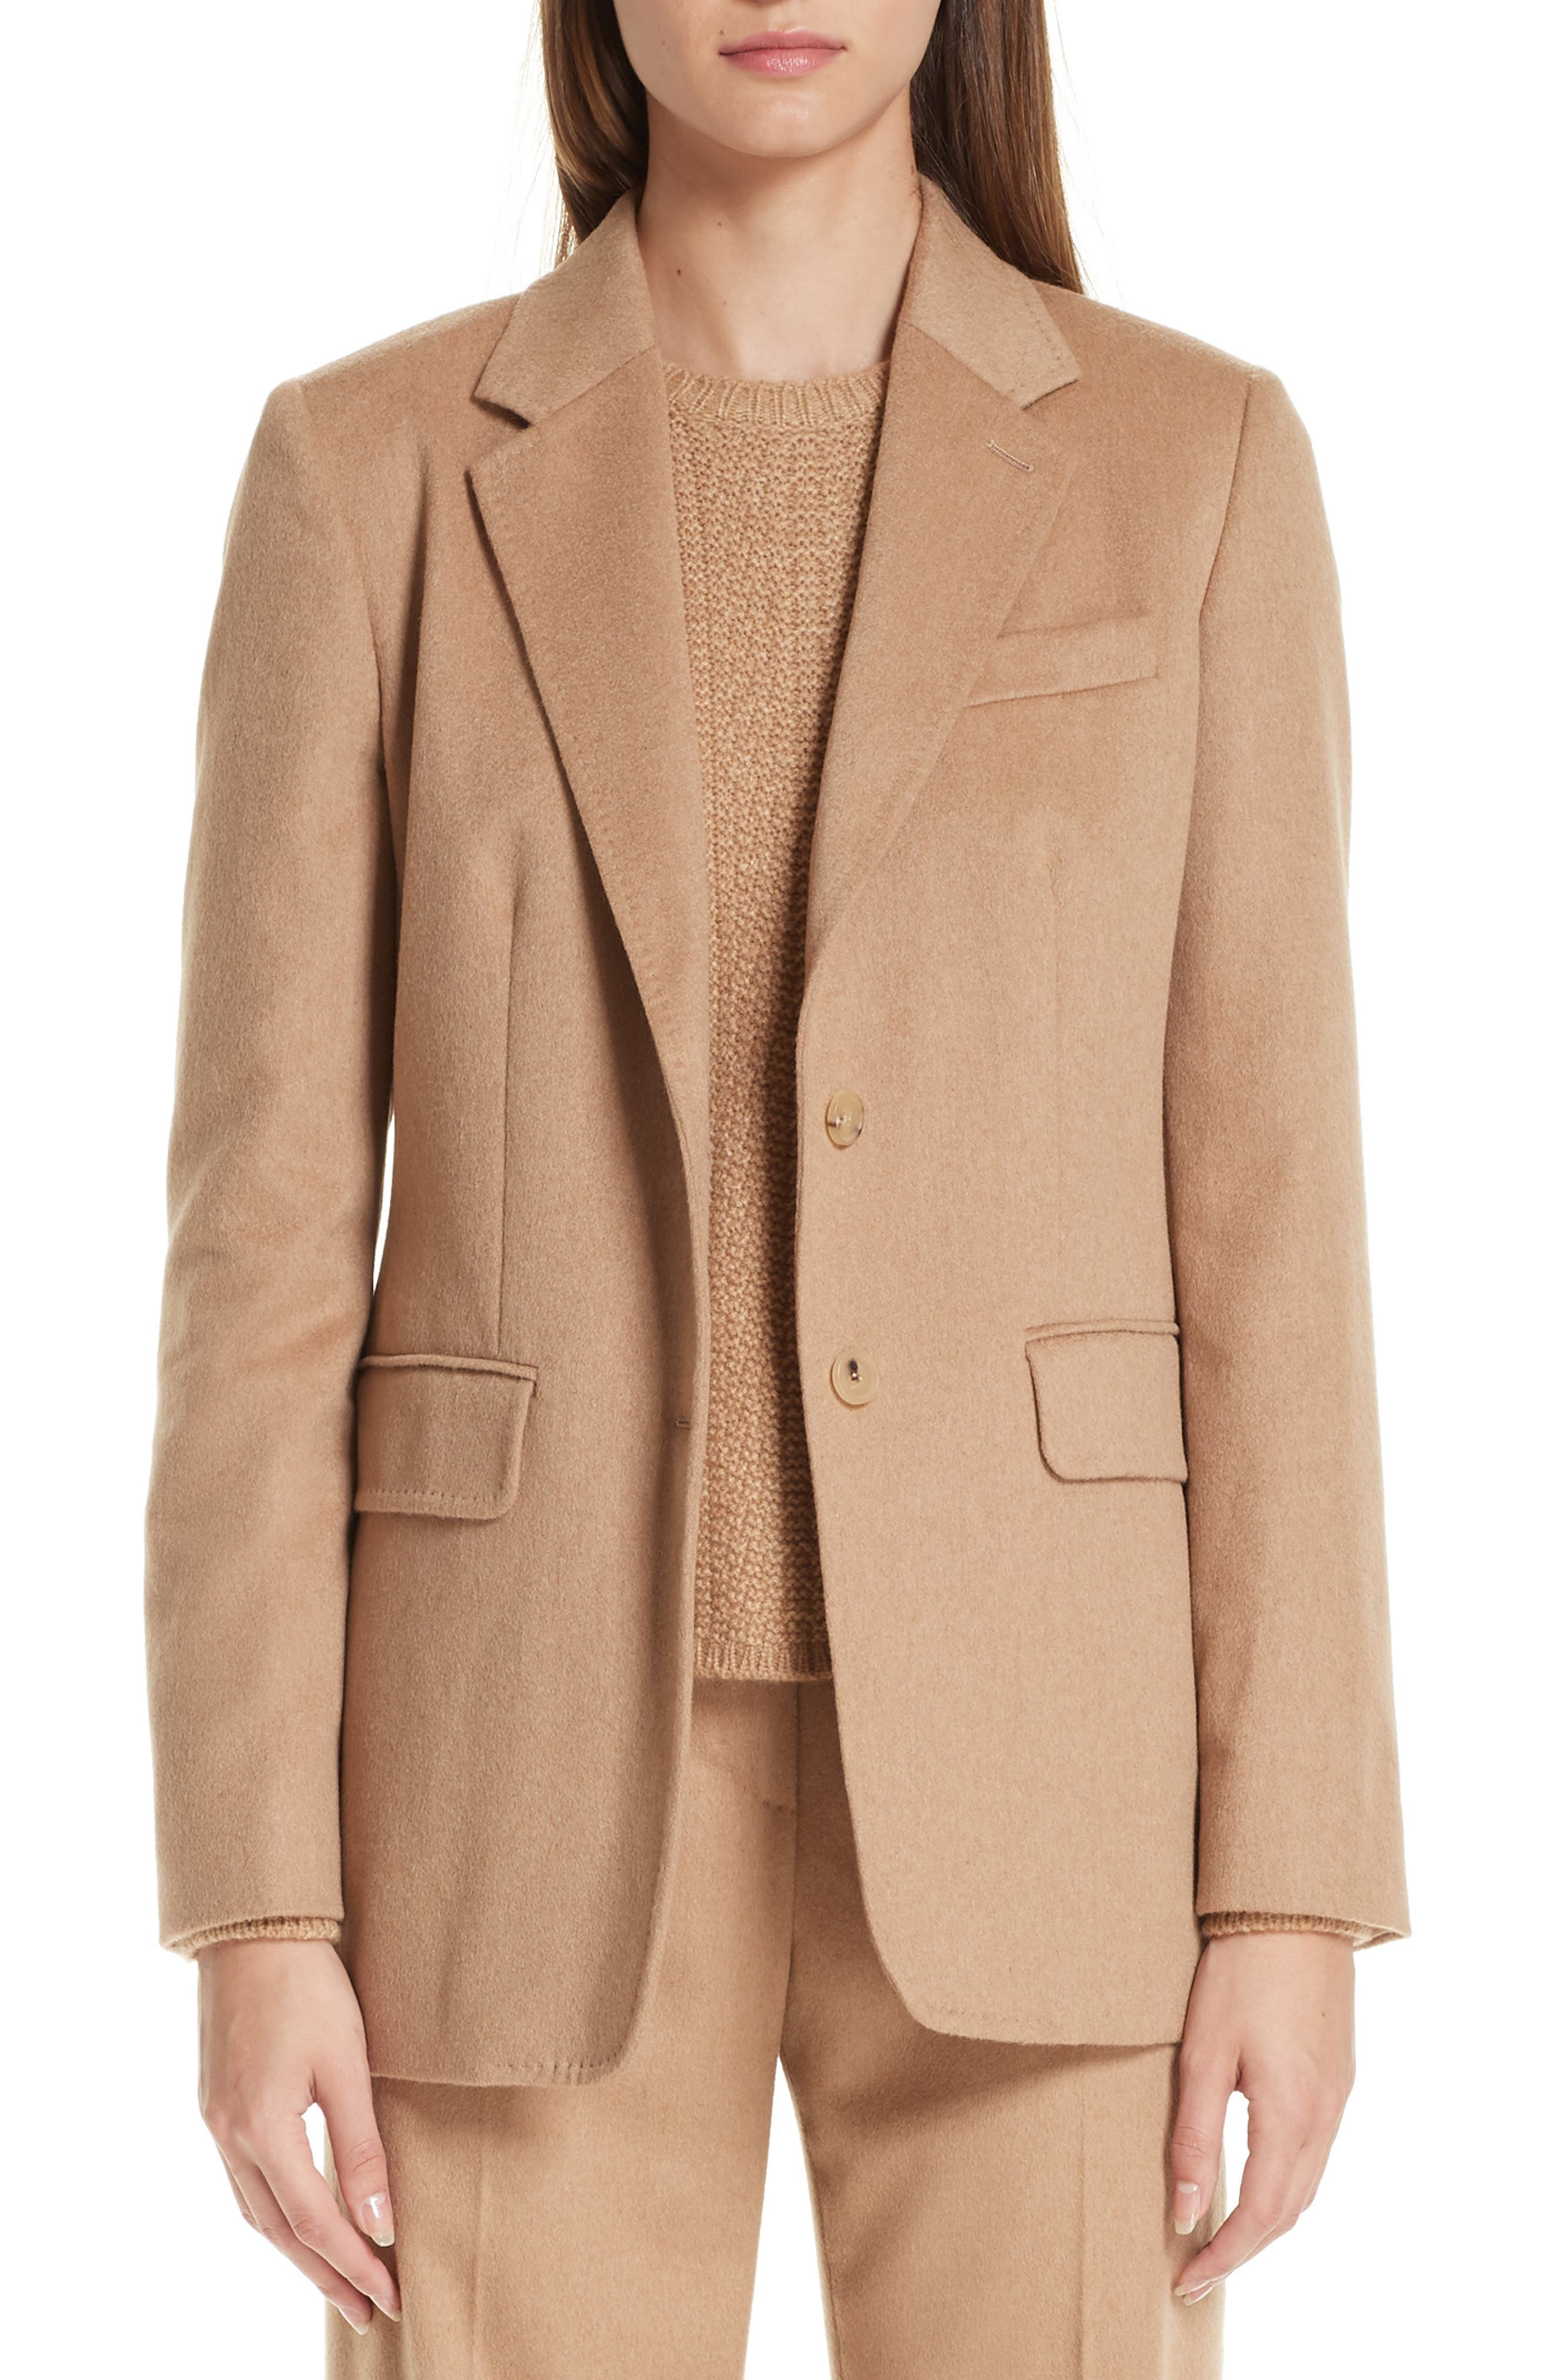 Panteon Camel Hair Jacket,                         Main,                         color, 232